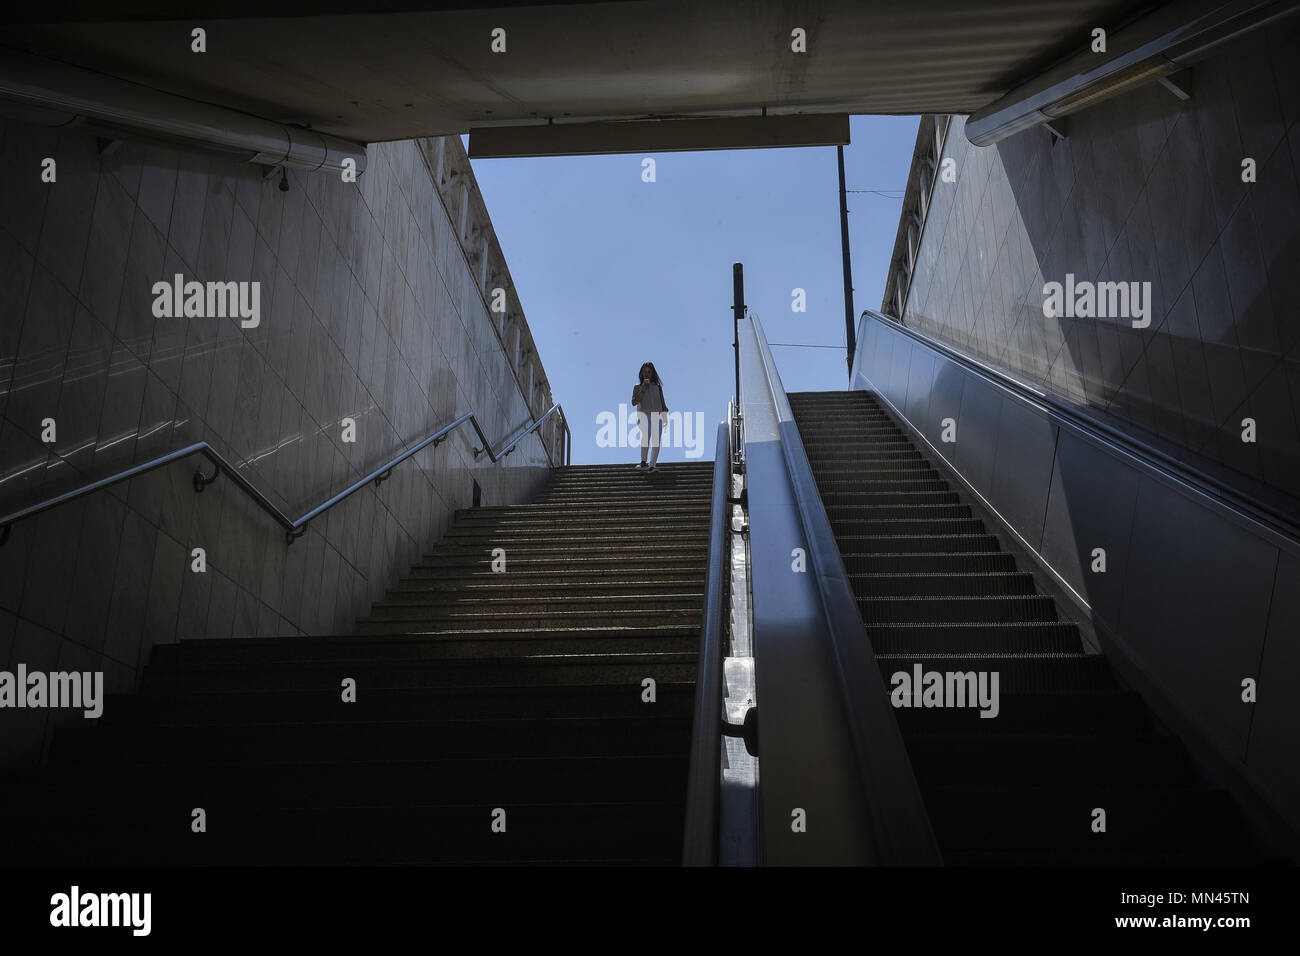 Athens, Greece. 14th May, 2018. A woman looks down at a closed metro station during a 24-hour strike called by metro workers to protest shortages in both staff and equipment in Athens, Greece, May 14, 2018. Credit: Marios Lolos/Xinhua/Alamy Live News - Stock Image